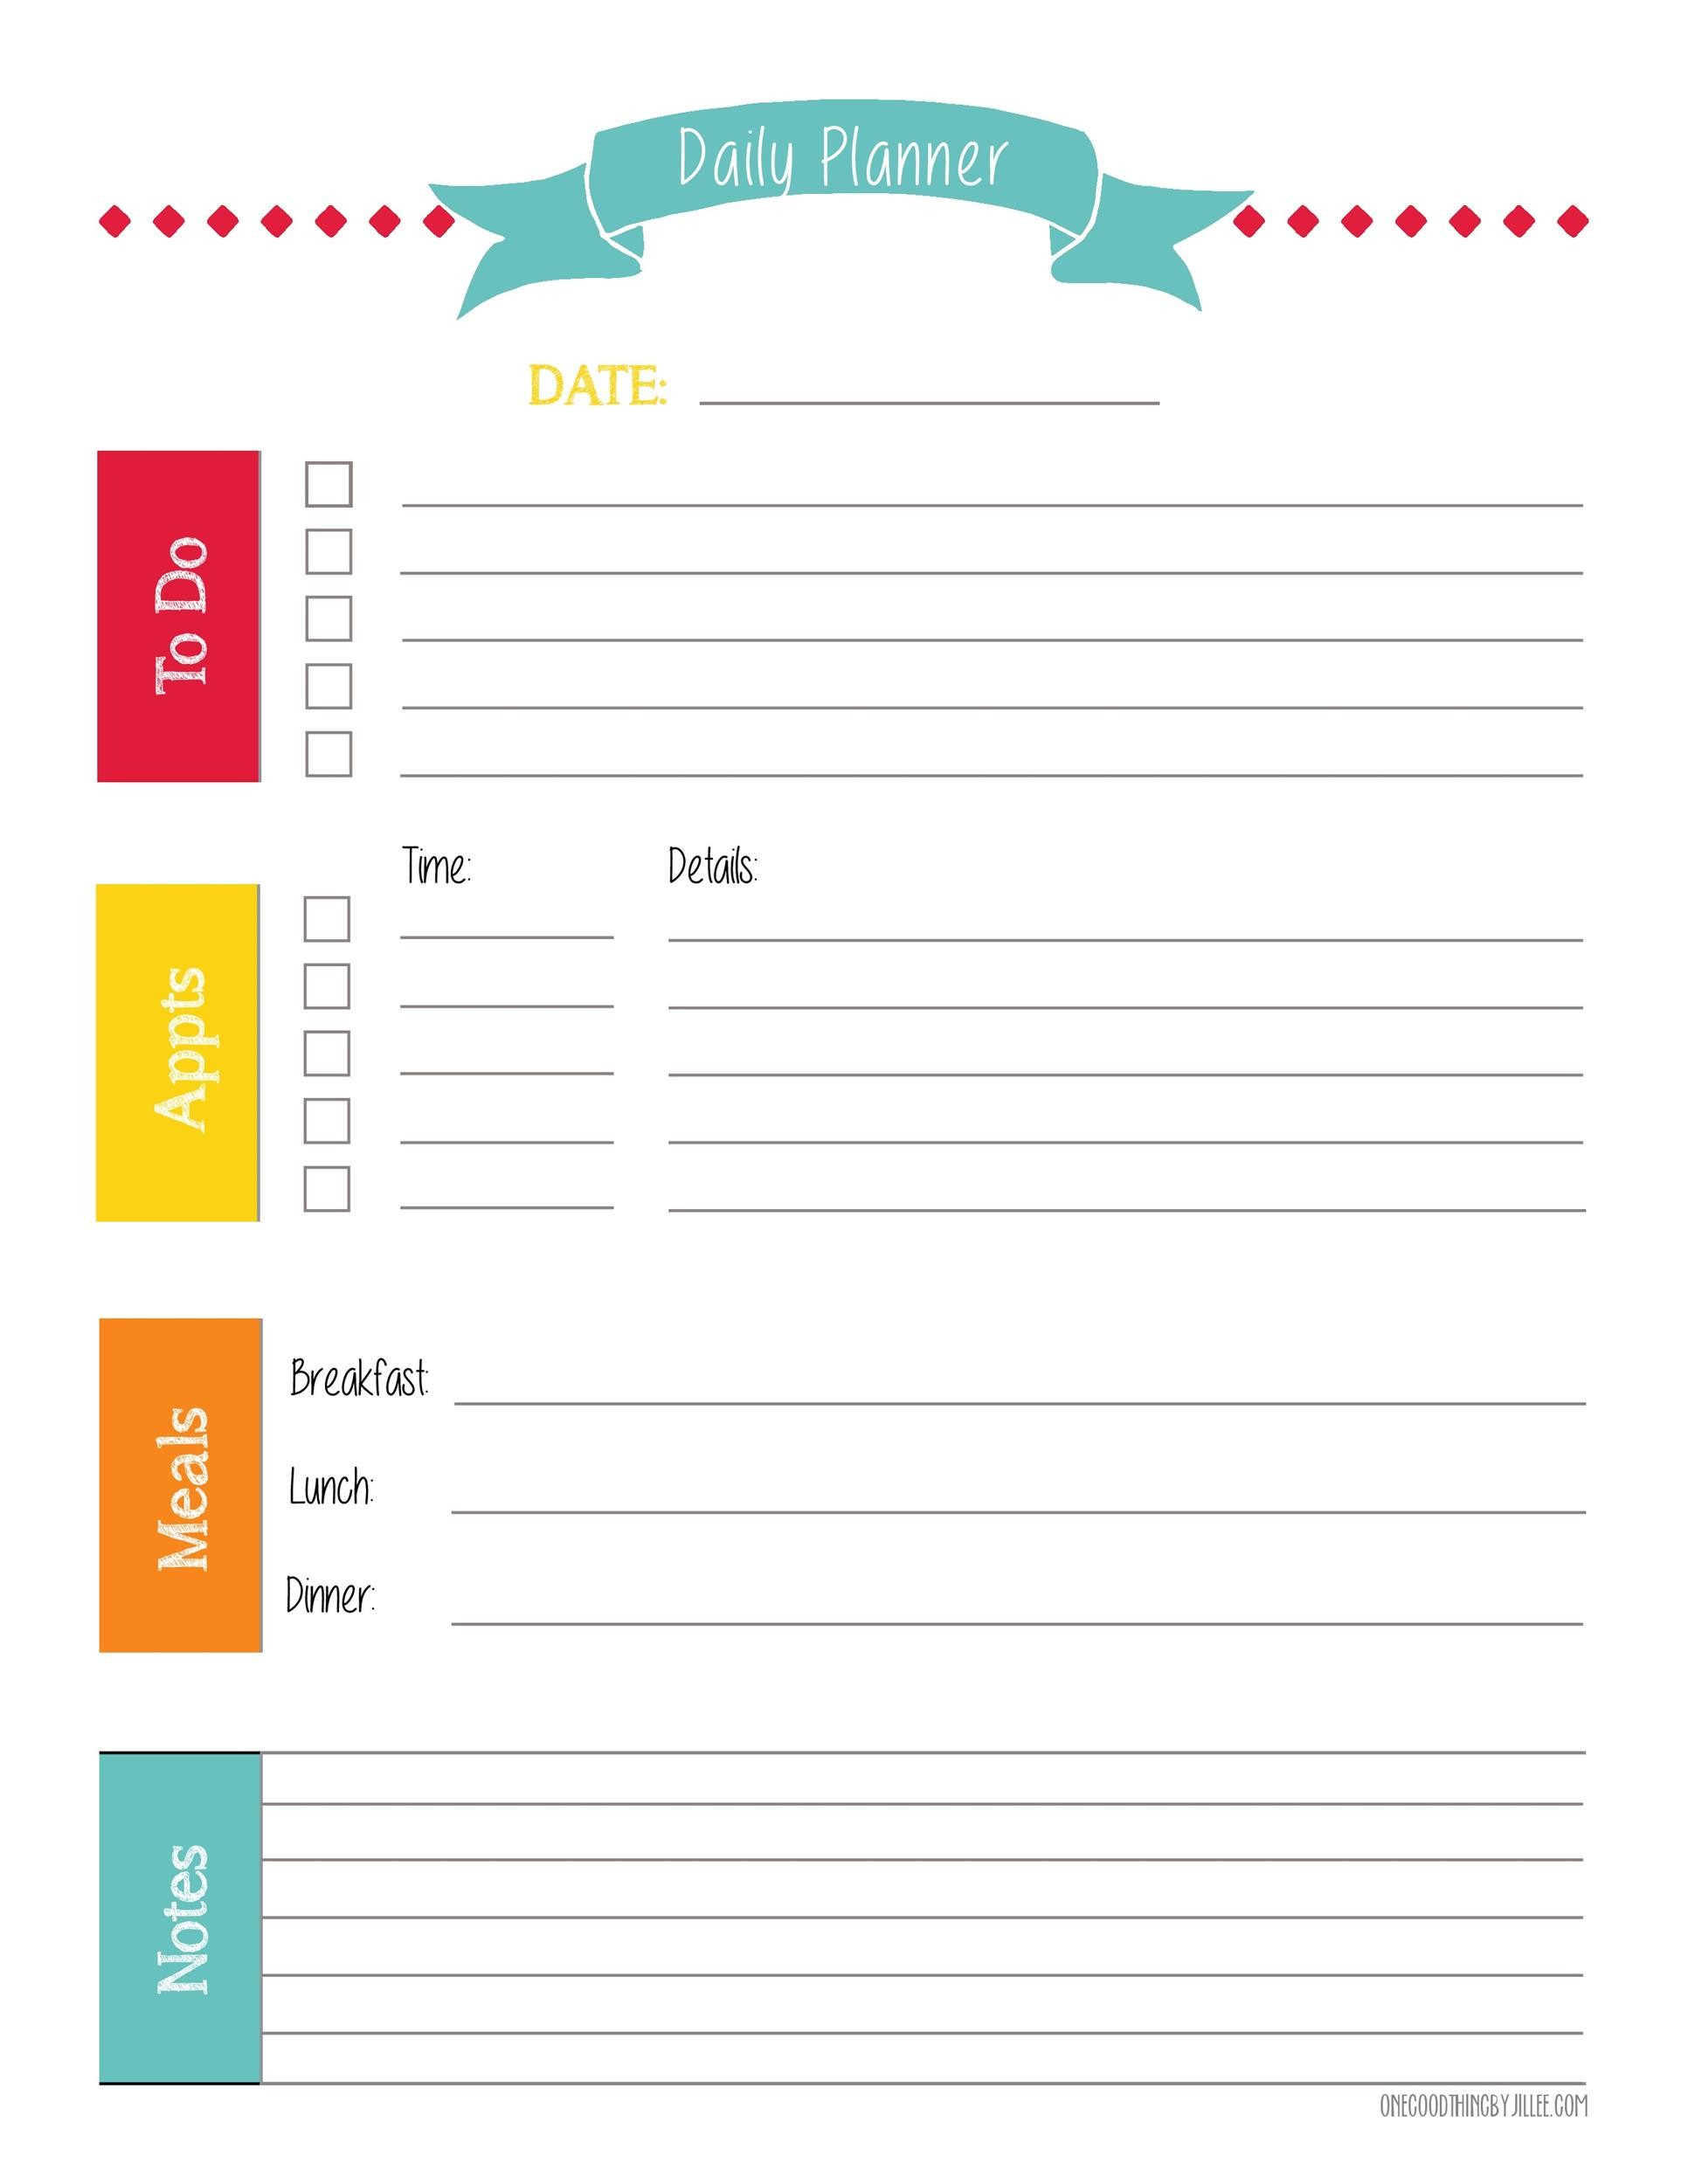 printable daily planner templates koni polycode co